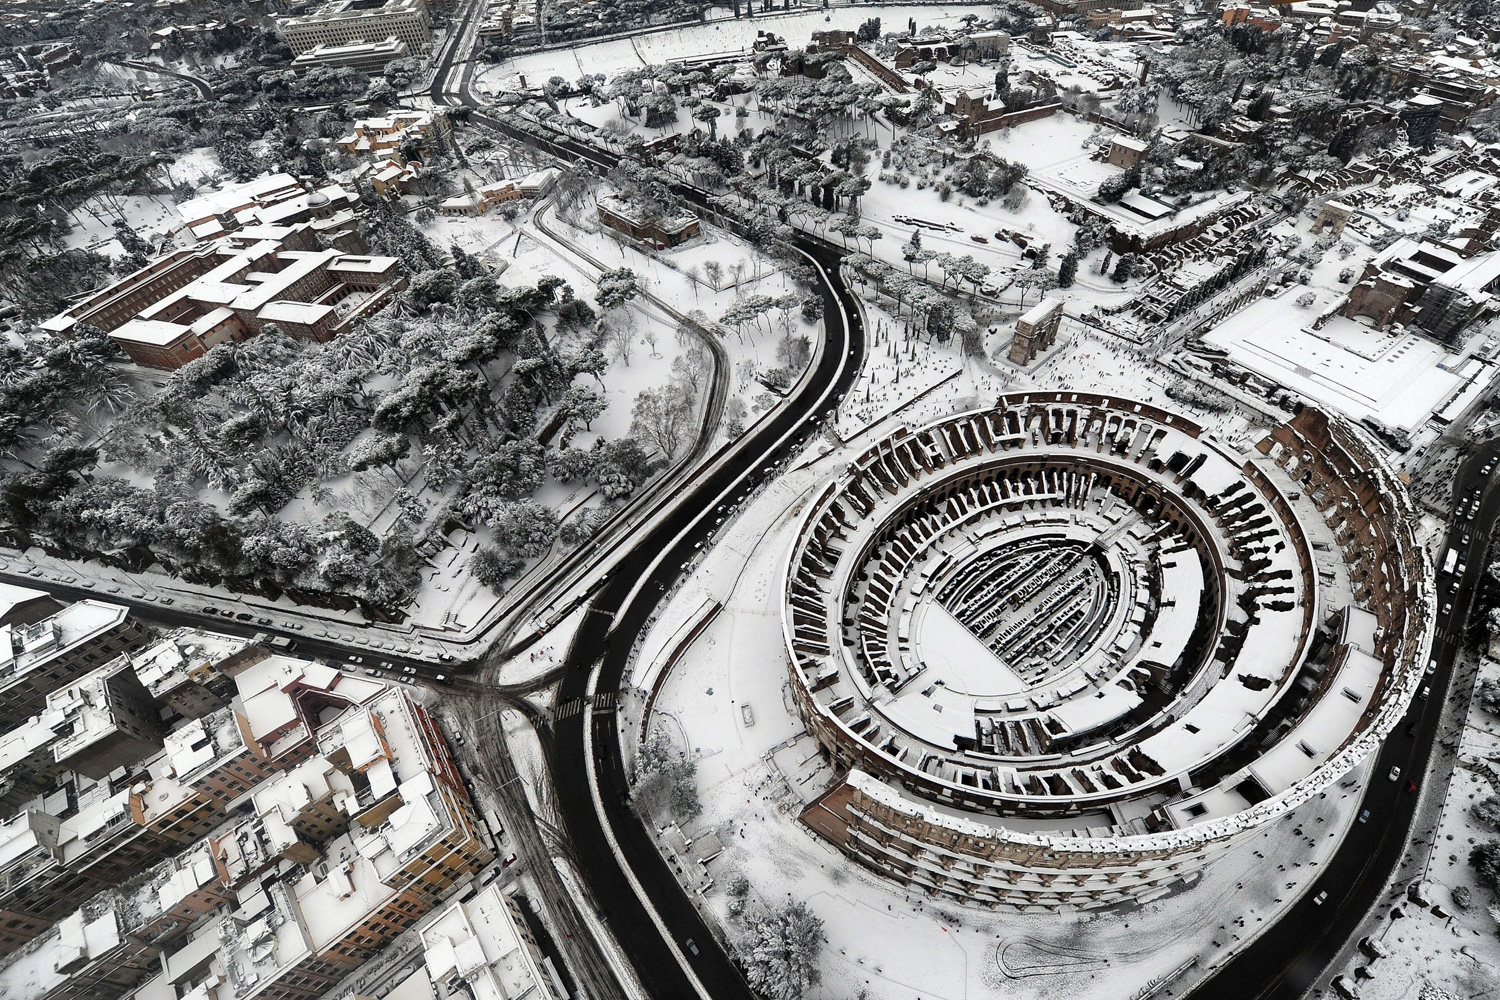 February 4, 2012. An aerial view showing the Colosseum in Rome following heavy overnight snowfall.